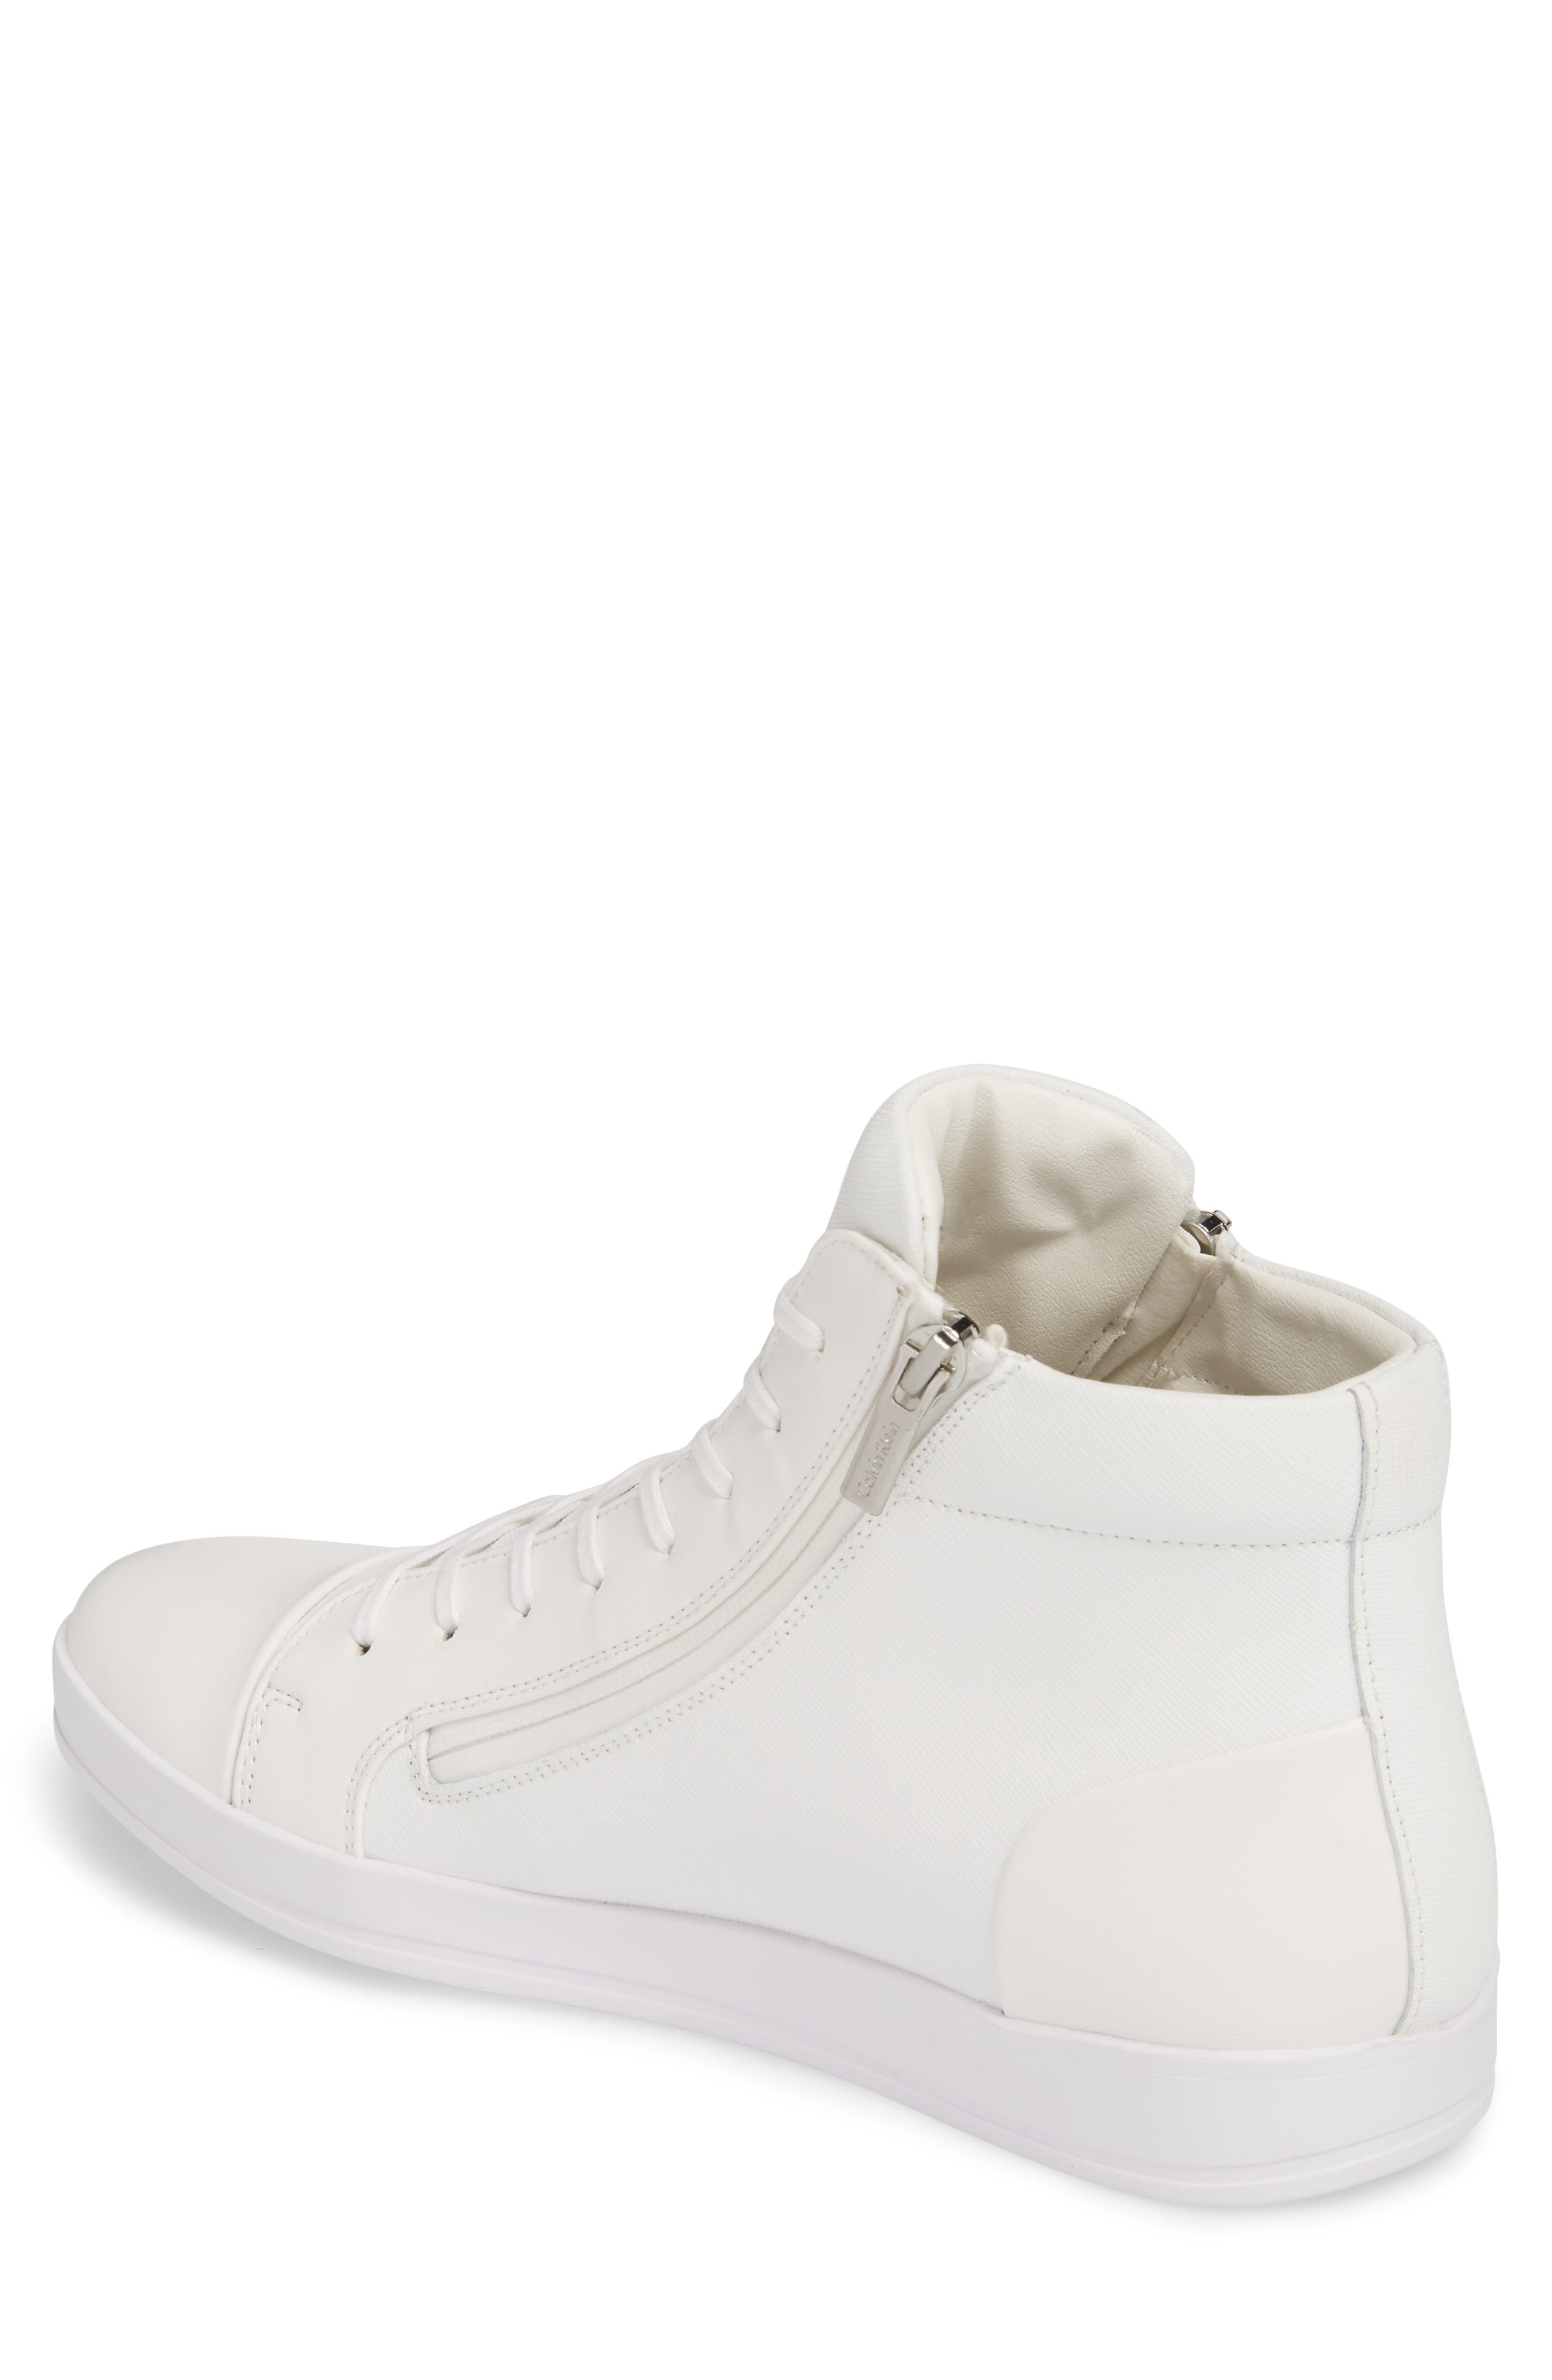 Berke High Top Sneaker,                             Alternate thumbnail 2, color,                             White Leather